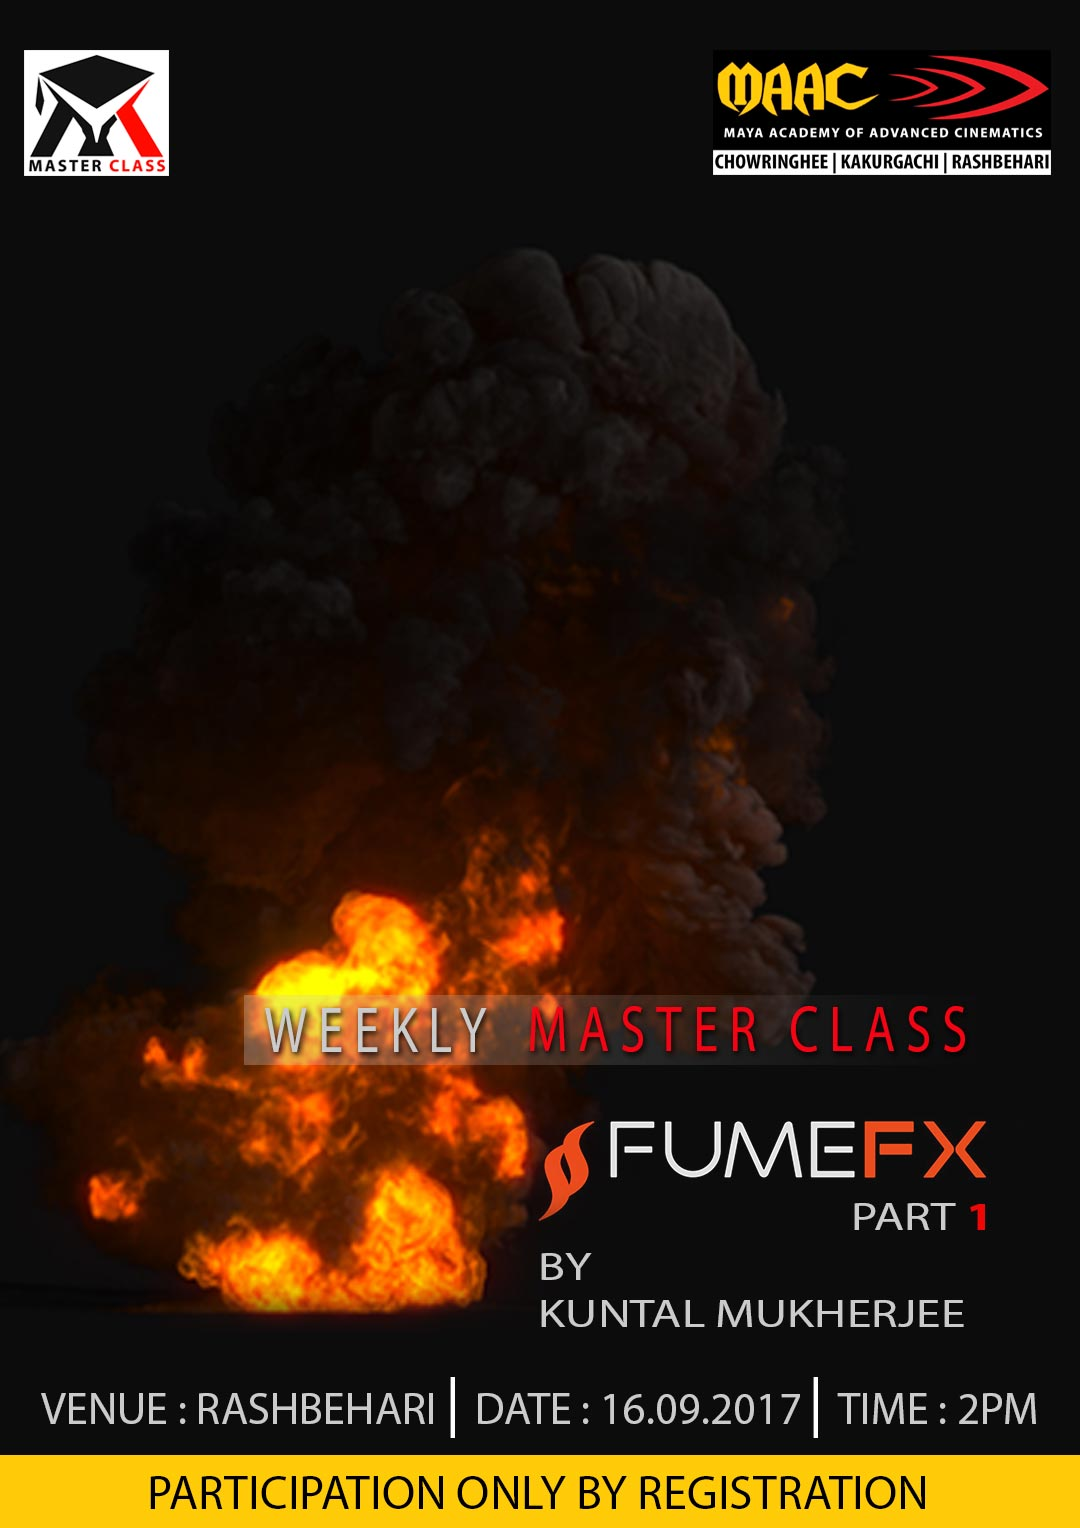 Weekly Master Class on FumeFx - Kuntal Mukherjee